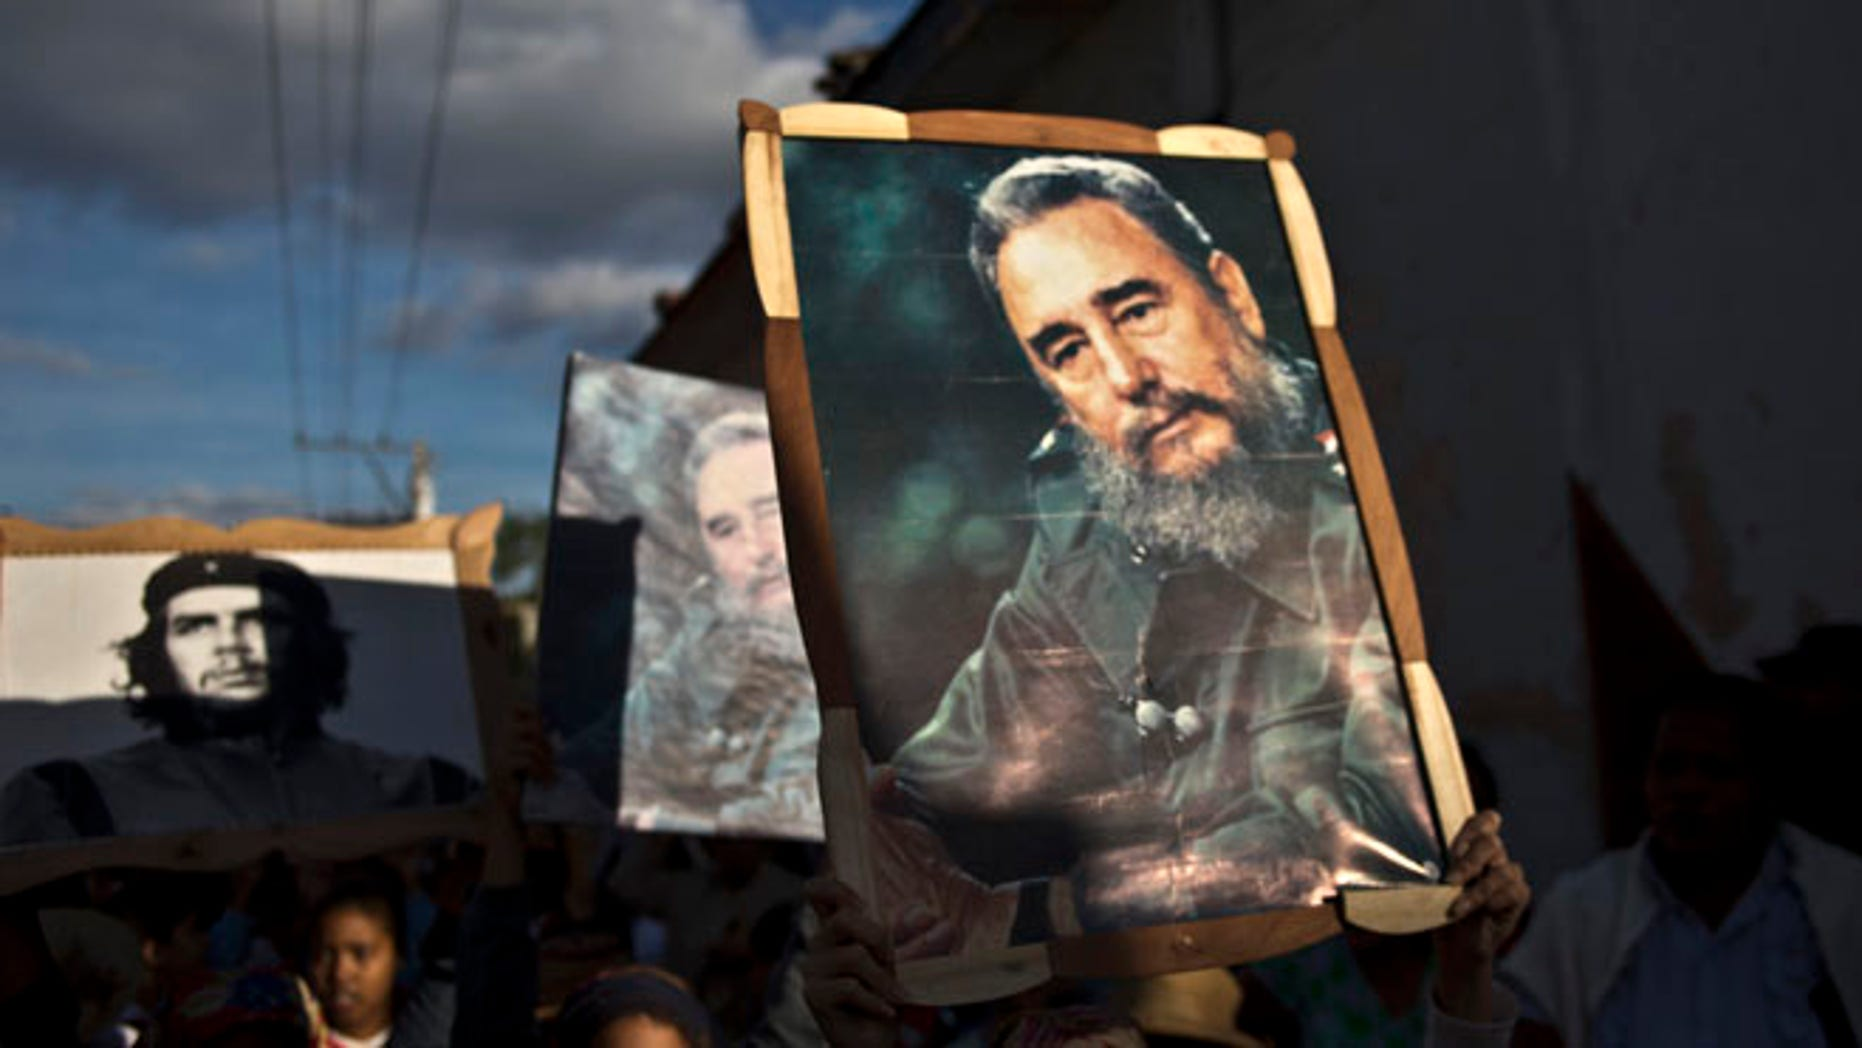 Jan. 8, 2015: Children carry framed images of Fidel Castro and Che Guevara in a caravan tribute marking the 56th anniversary of the original street party that greeted a triumphant Castro and his rebel army.